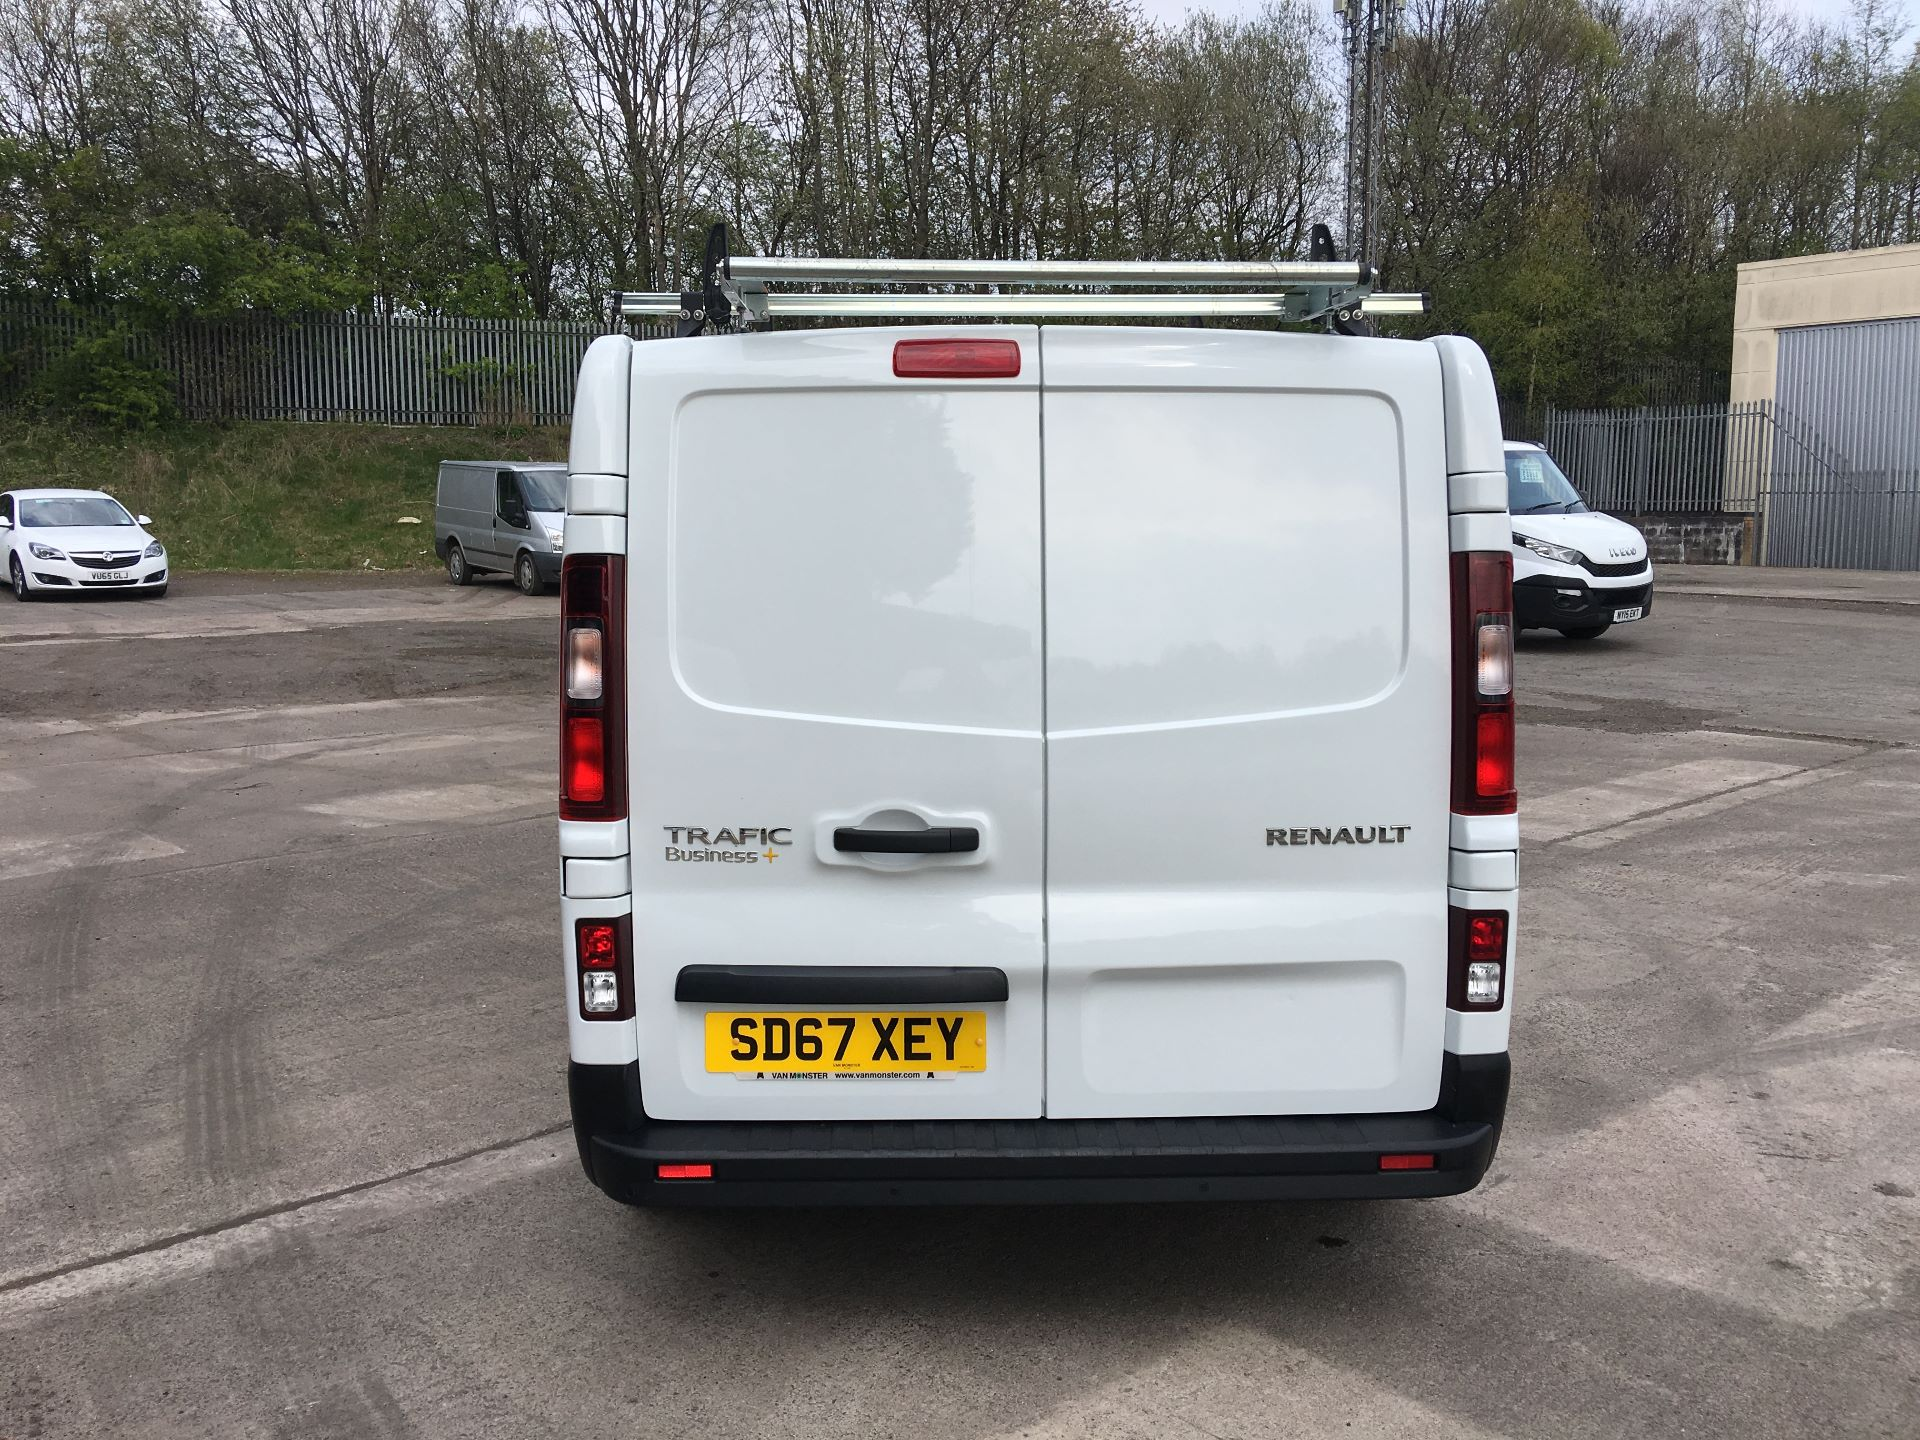 2017 Renault Trafic SL27 DCI 120PS BUSINESS+ VAN EURO 6 (SD67XEY) Image 11